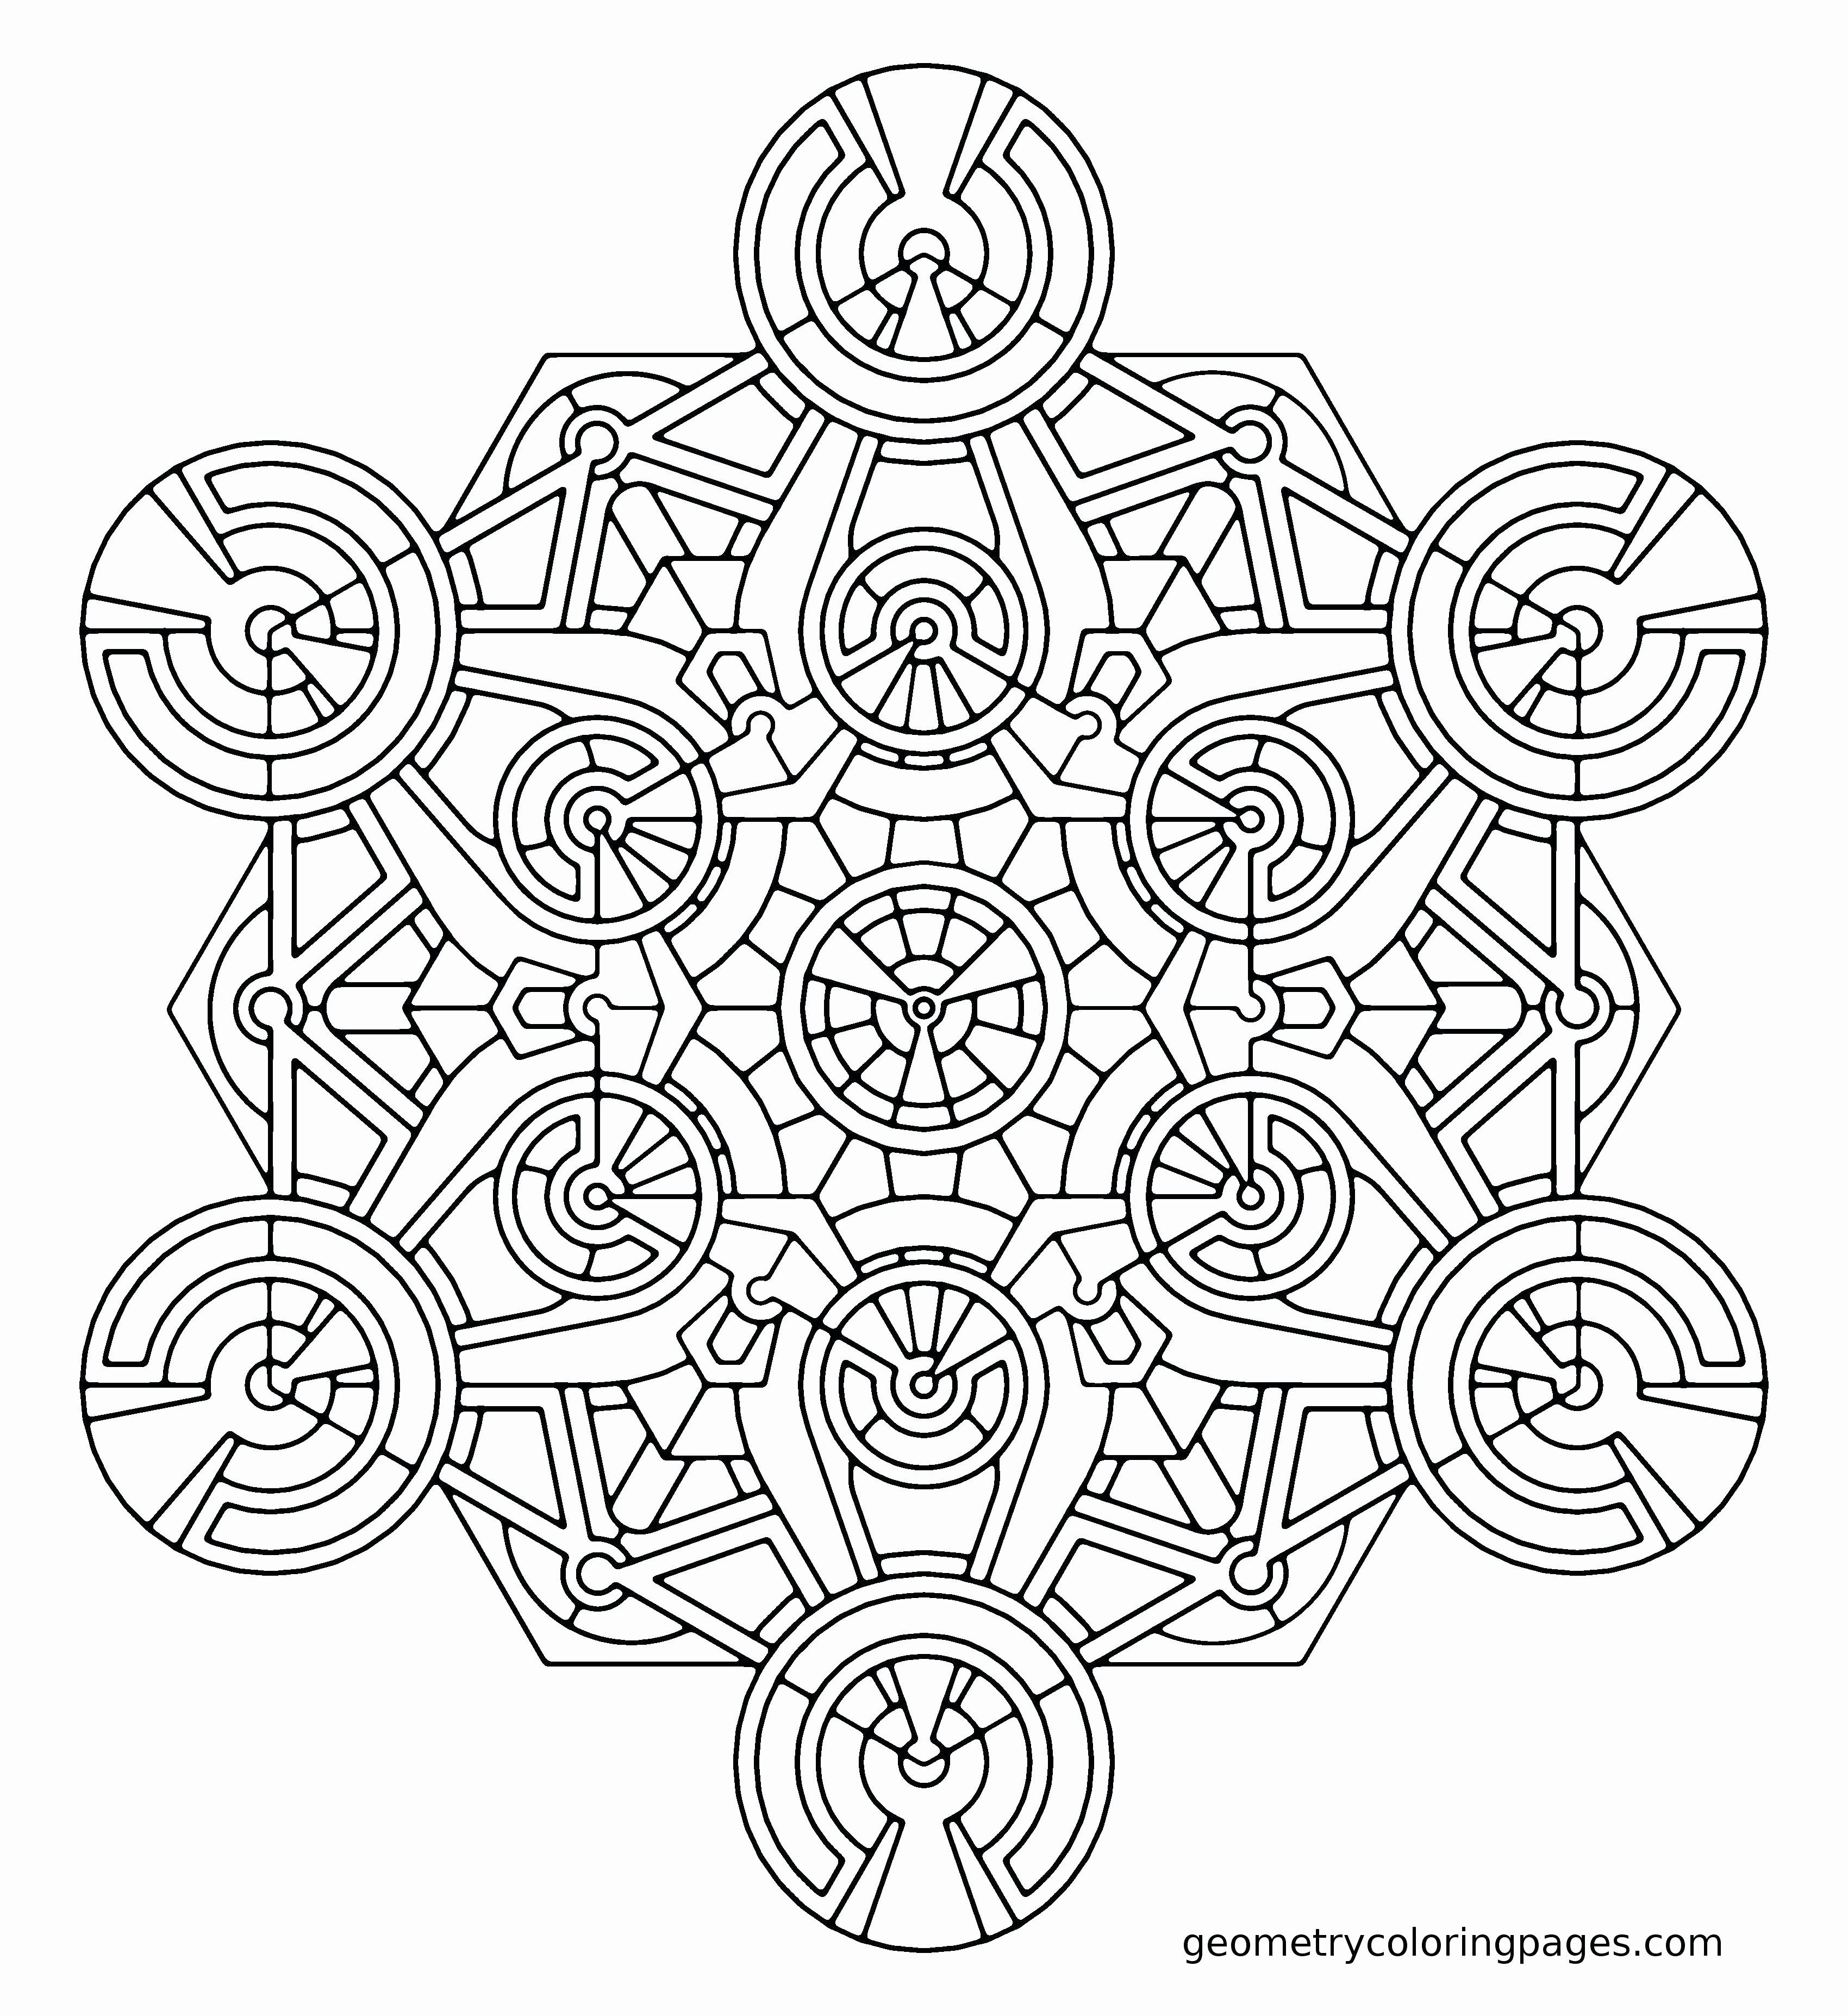 Coloring Letters Generator Fresh Word Coloring Page Generator In 2020 Abstract Coloring Pages Mandala Coloring Pages Coloring Pages